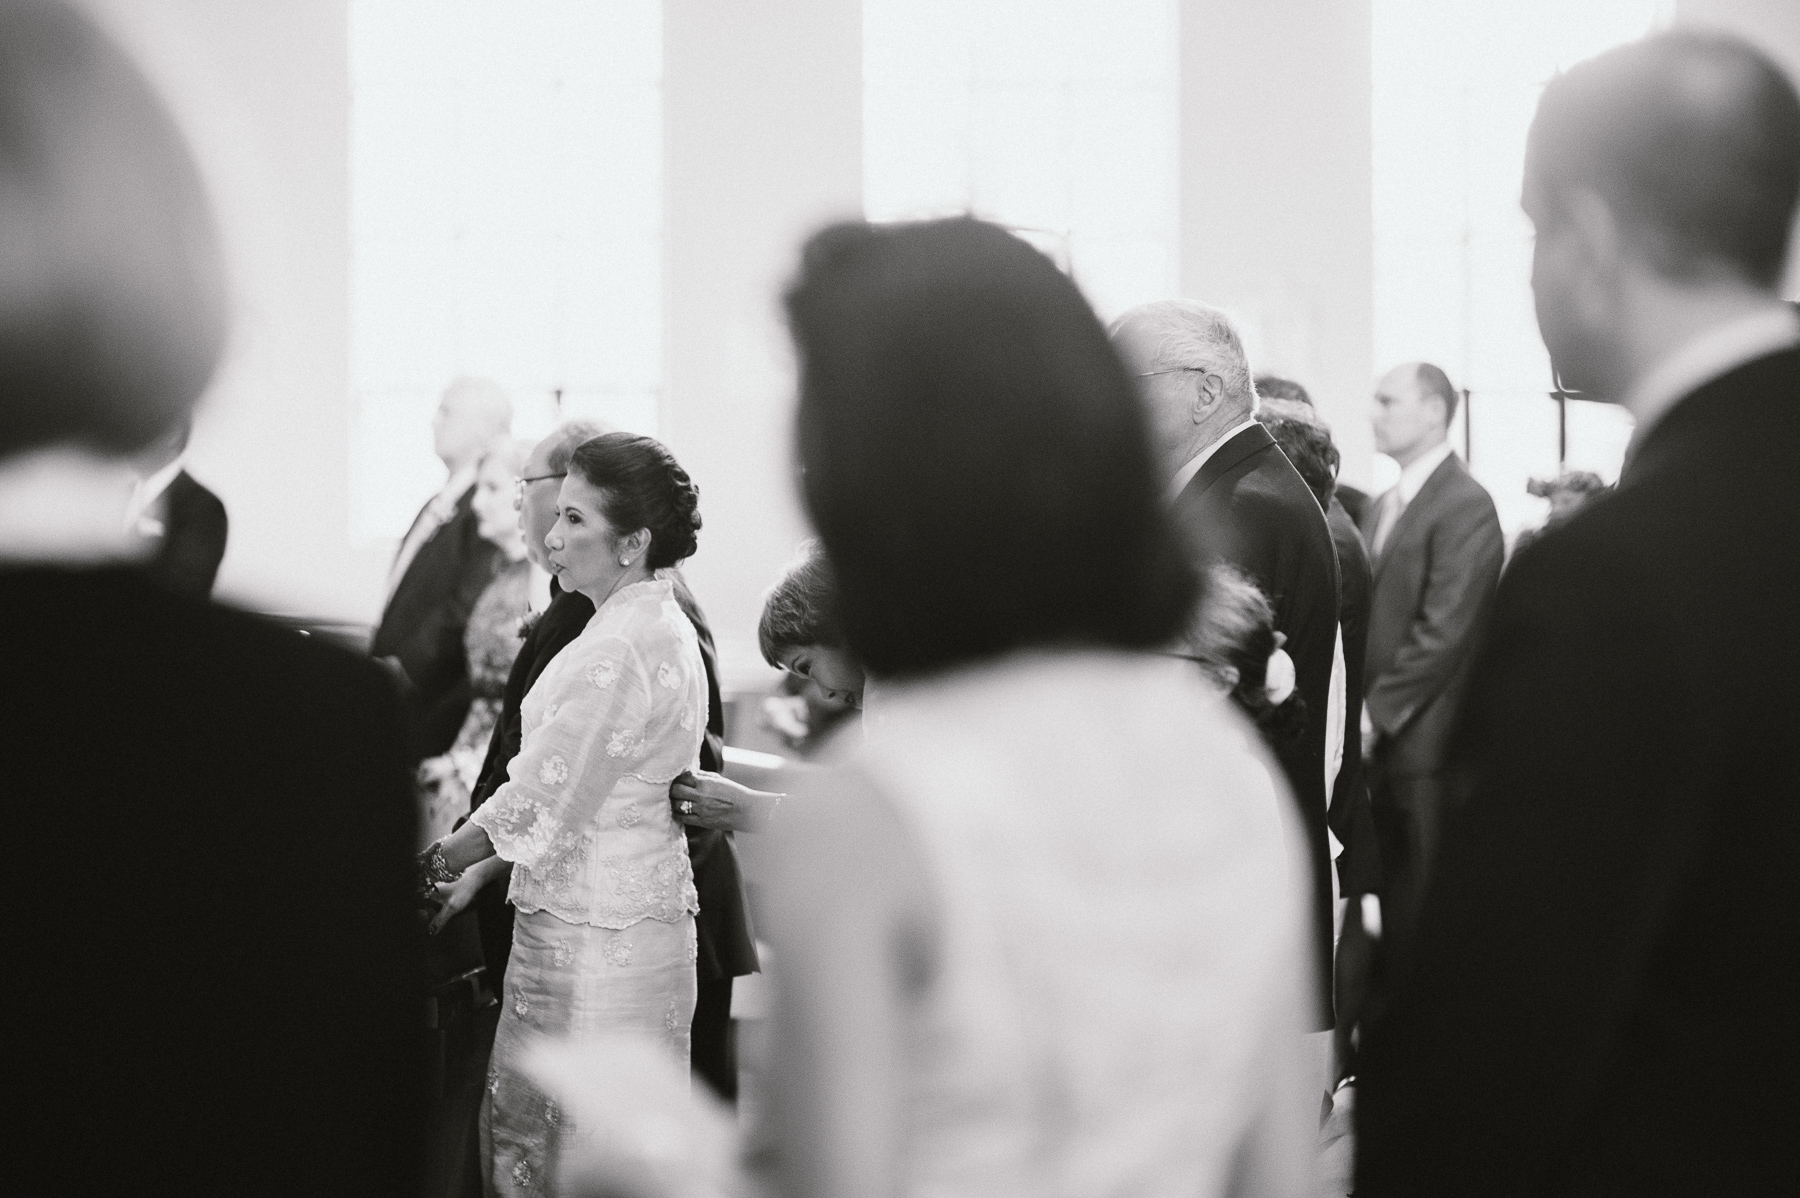 The_Carriage_House_at_Rockwood_Park_wedding_photo060.jpg